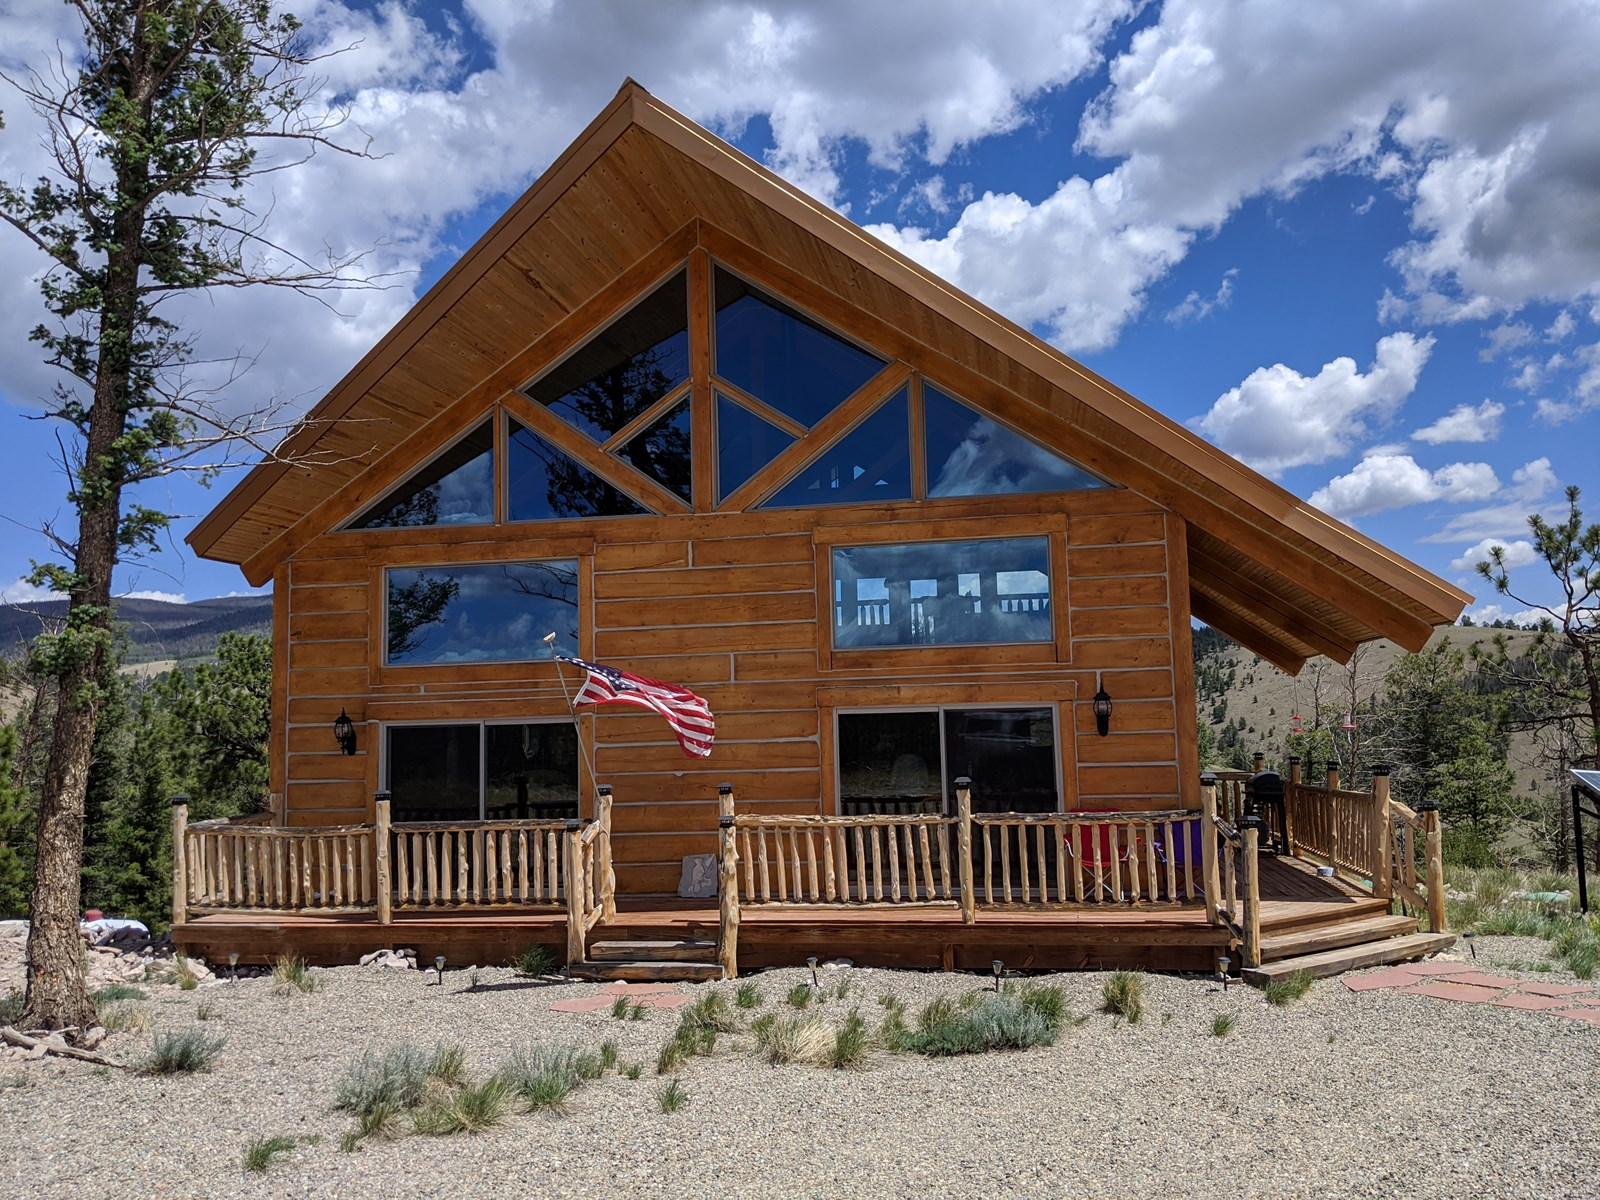 Mountain Dream Property with Off Grid Cabin on 95 Acres